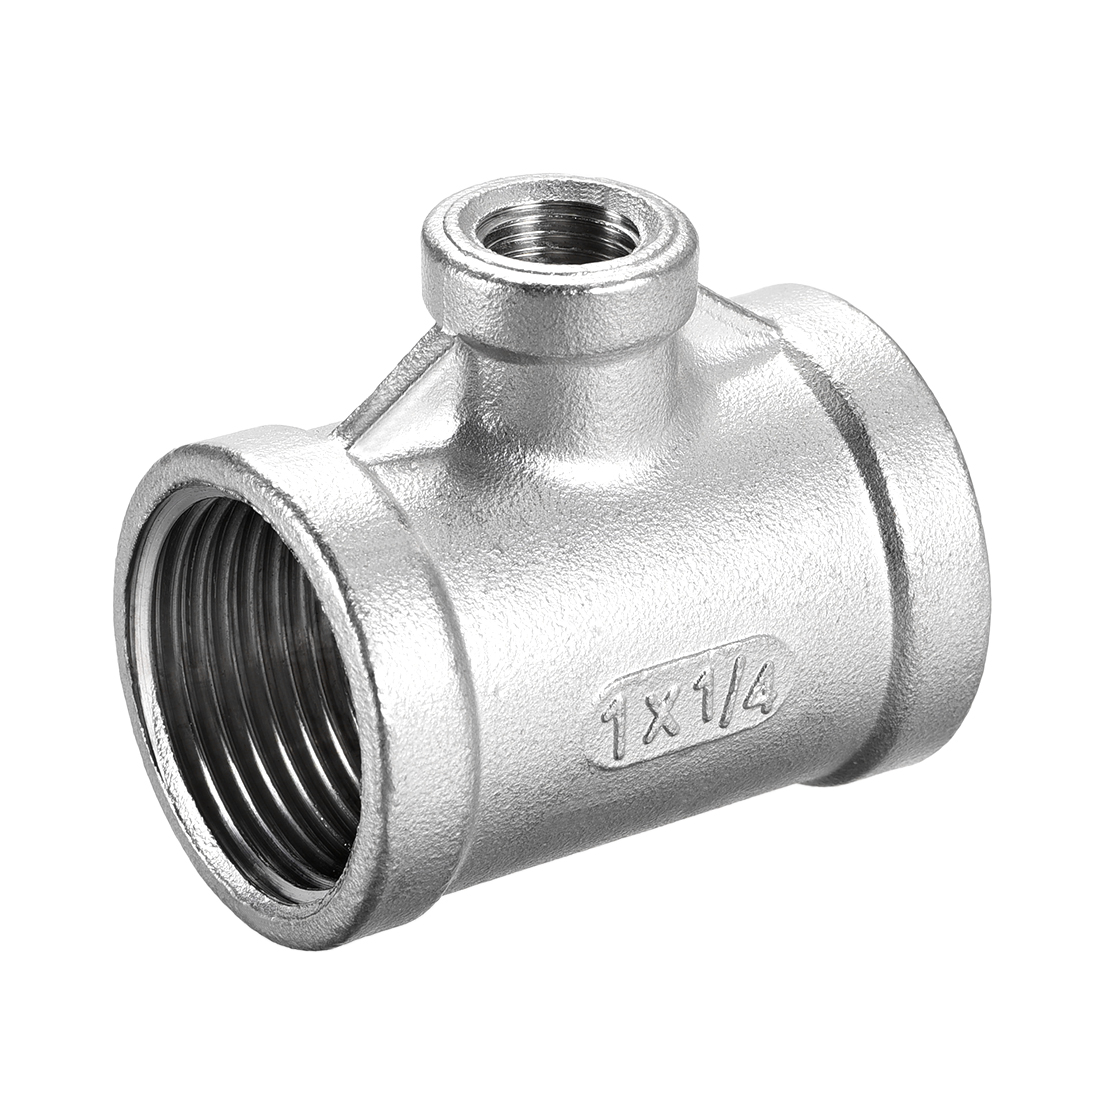 Stainless Steel 304 Cast Pipe Fitting 1BSPTx1/4BSPT Tee Shaped Connector